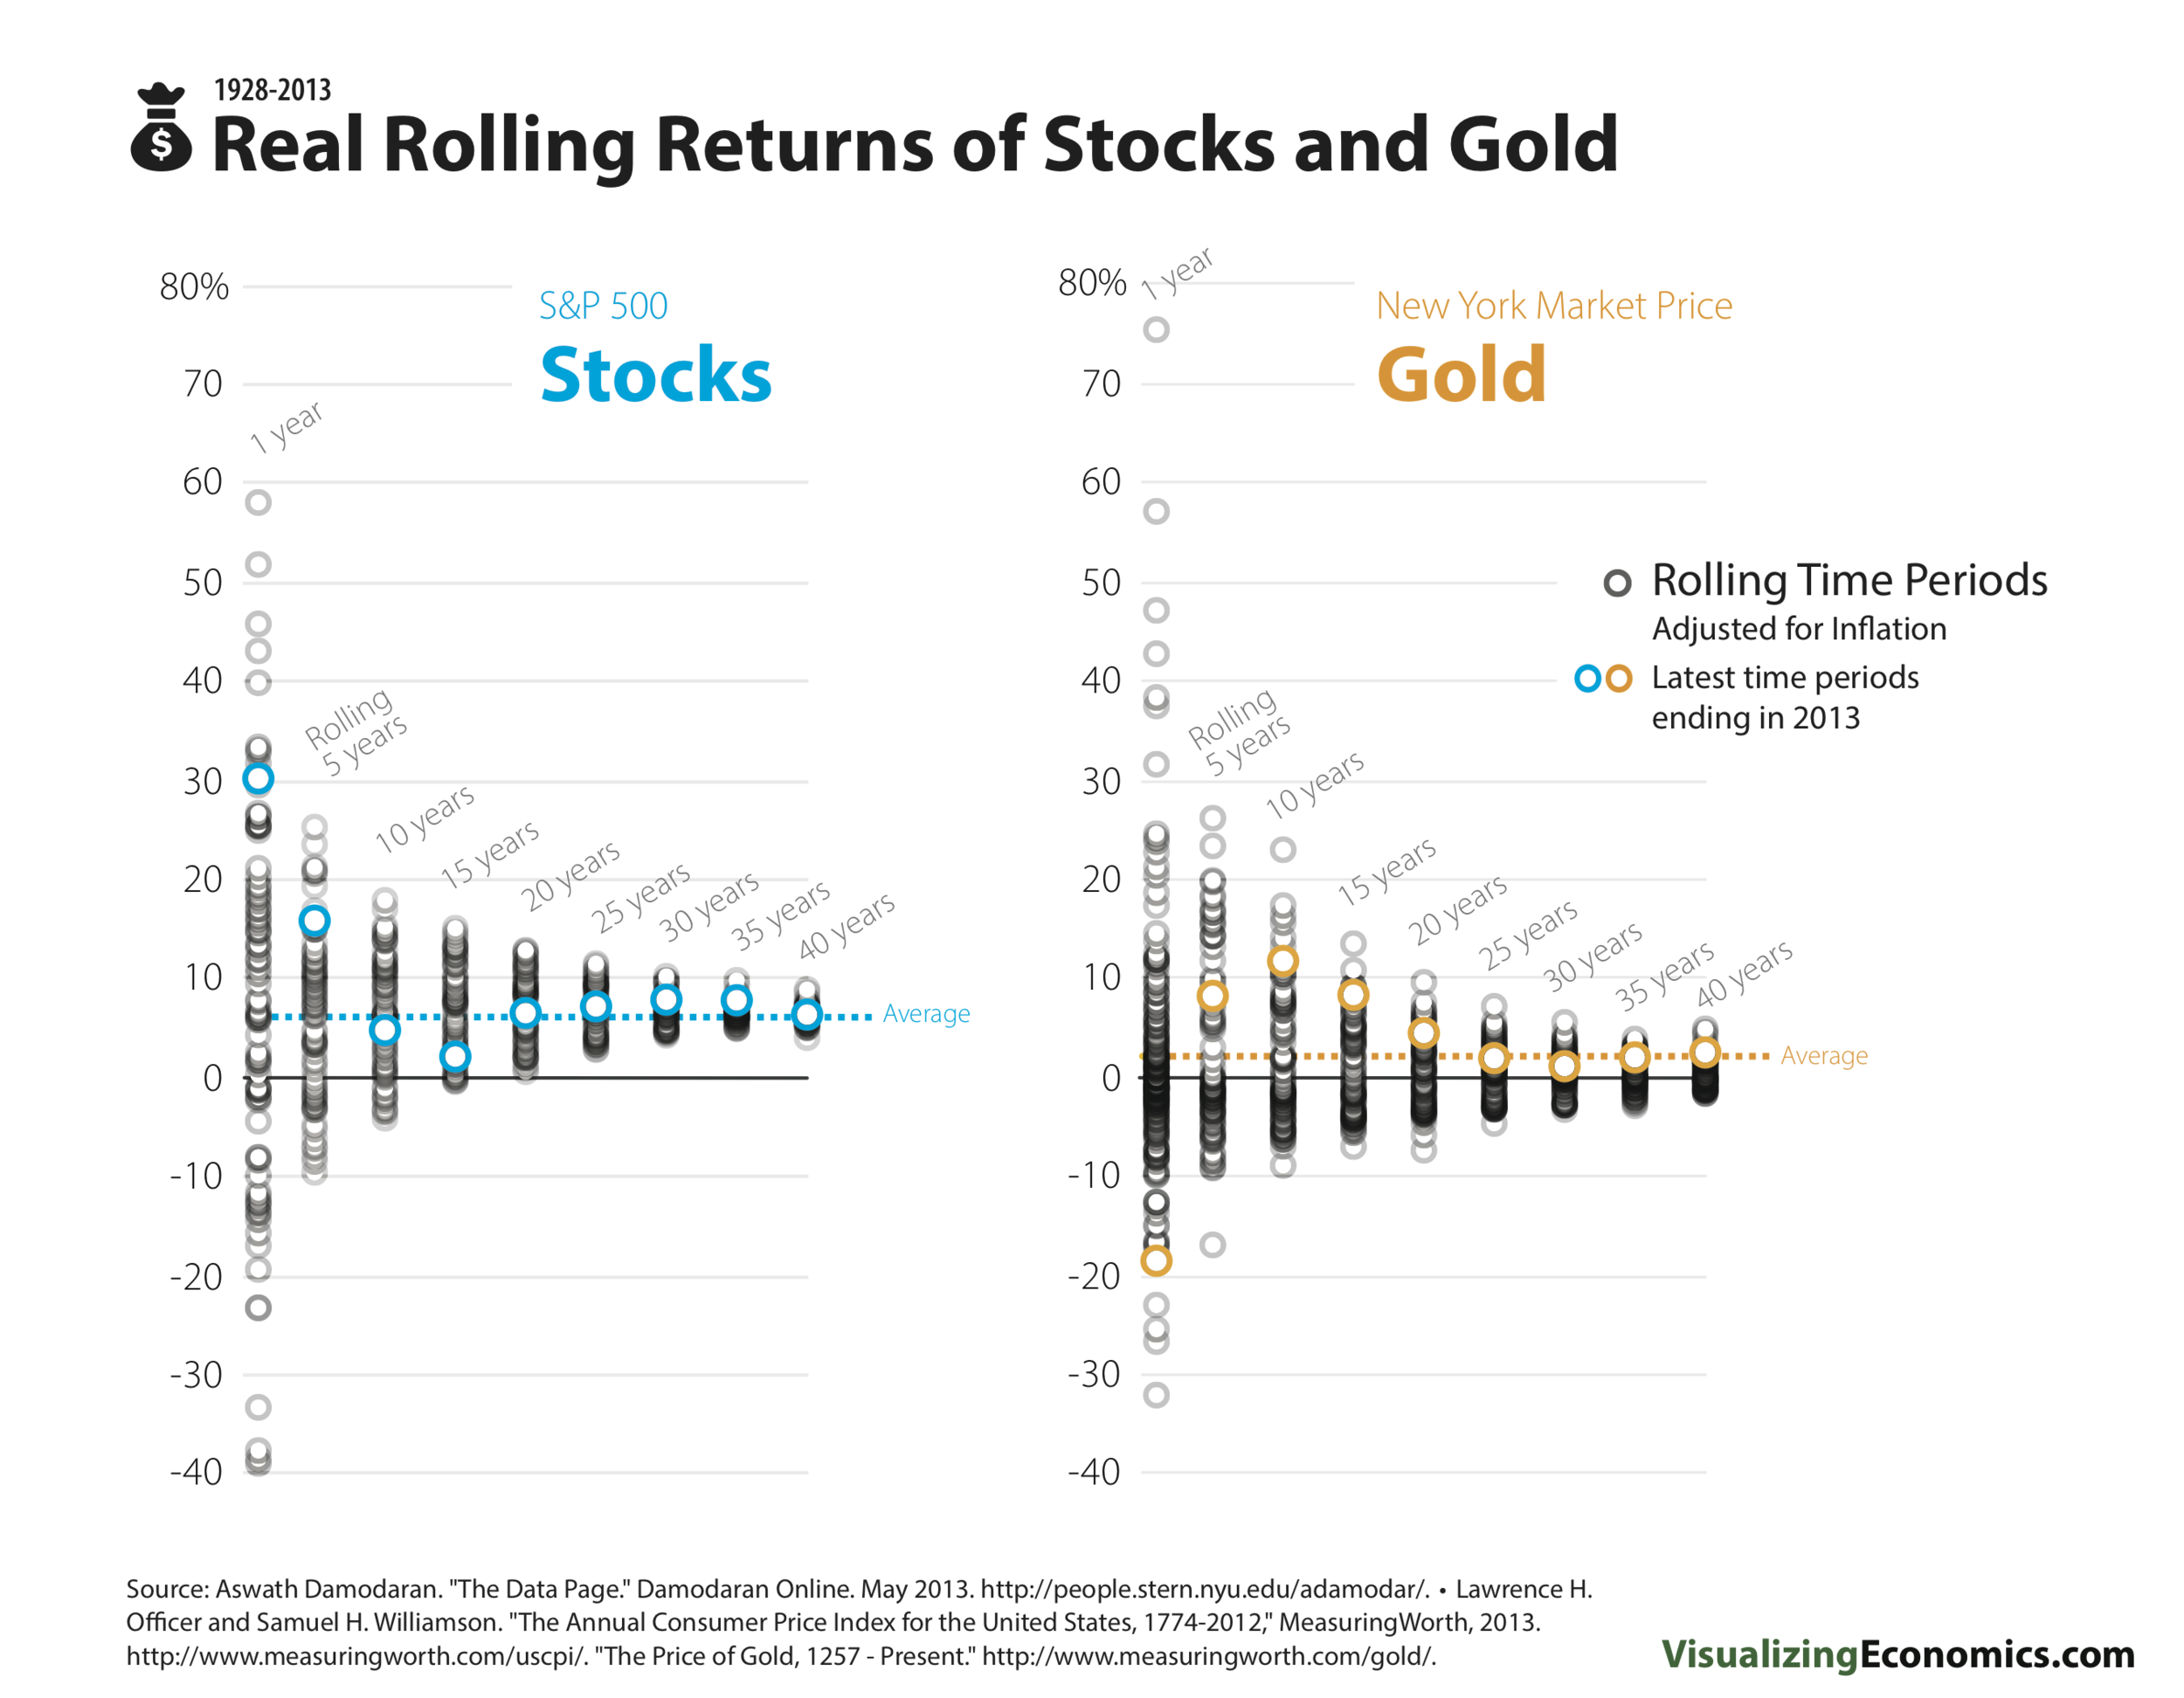 StockGoldRealRollingReturns_2013.png